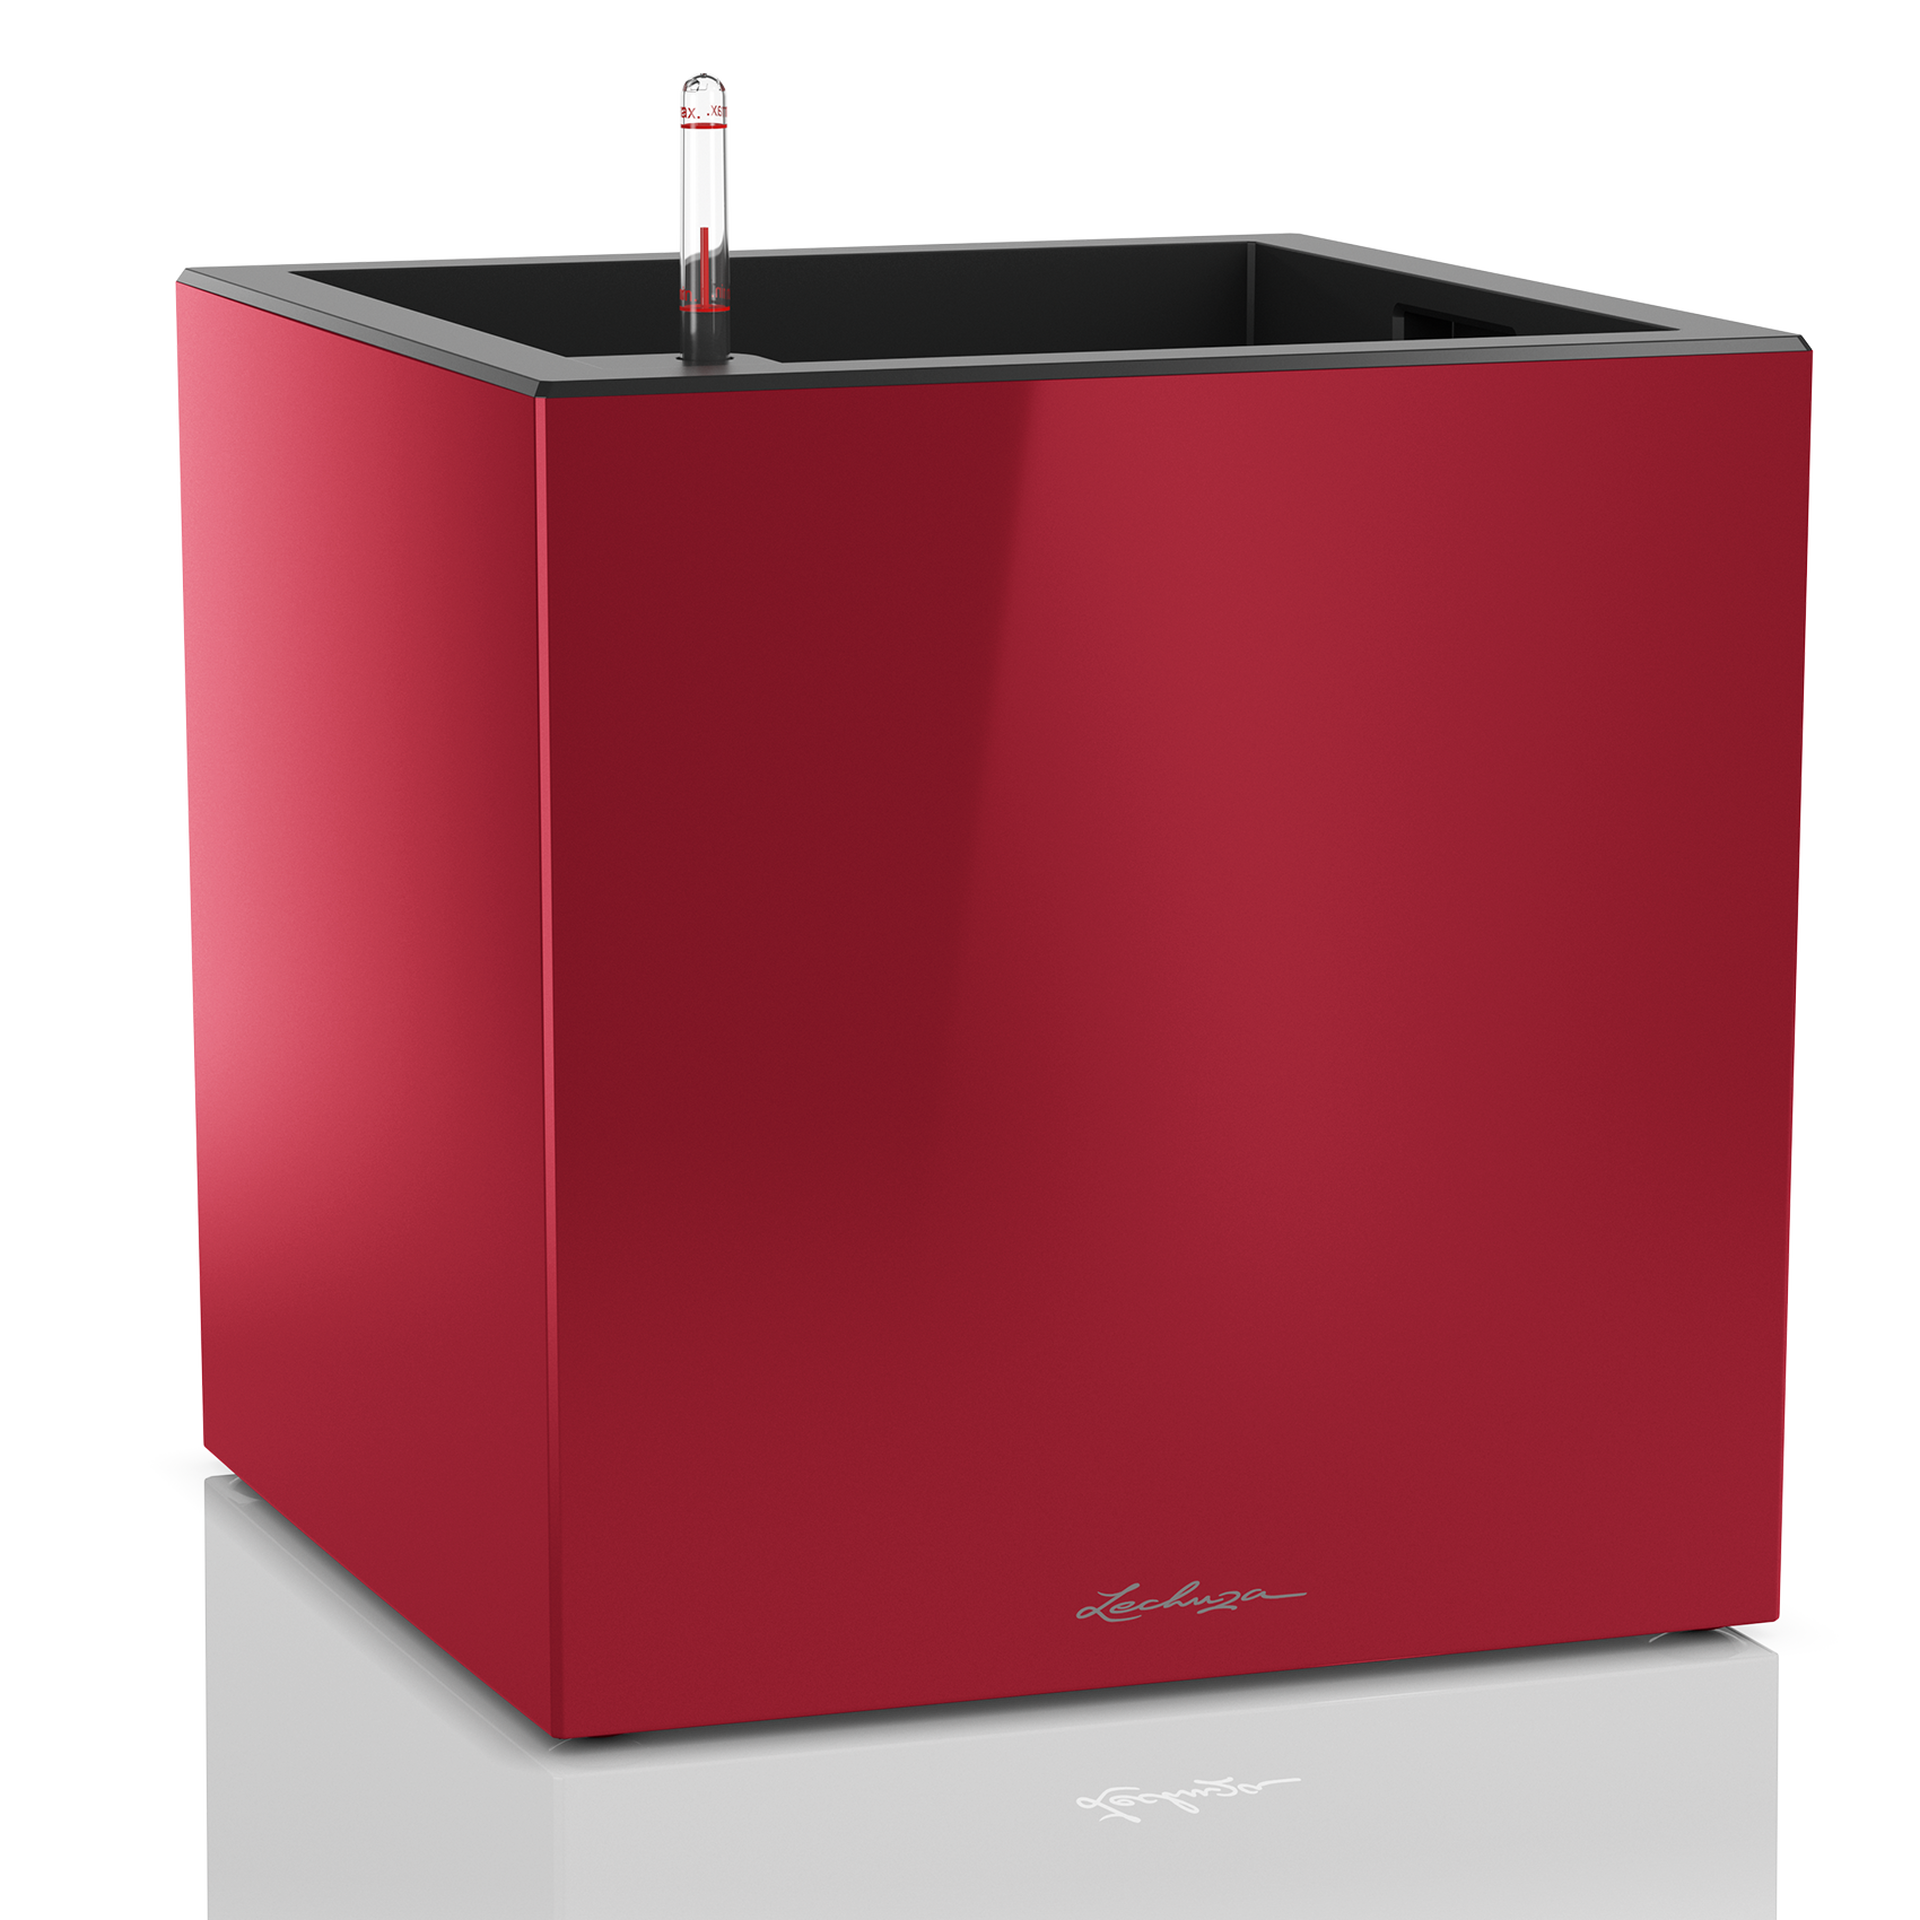 CANTO Cube 40 scarlet red high-gloss